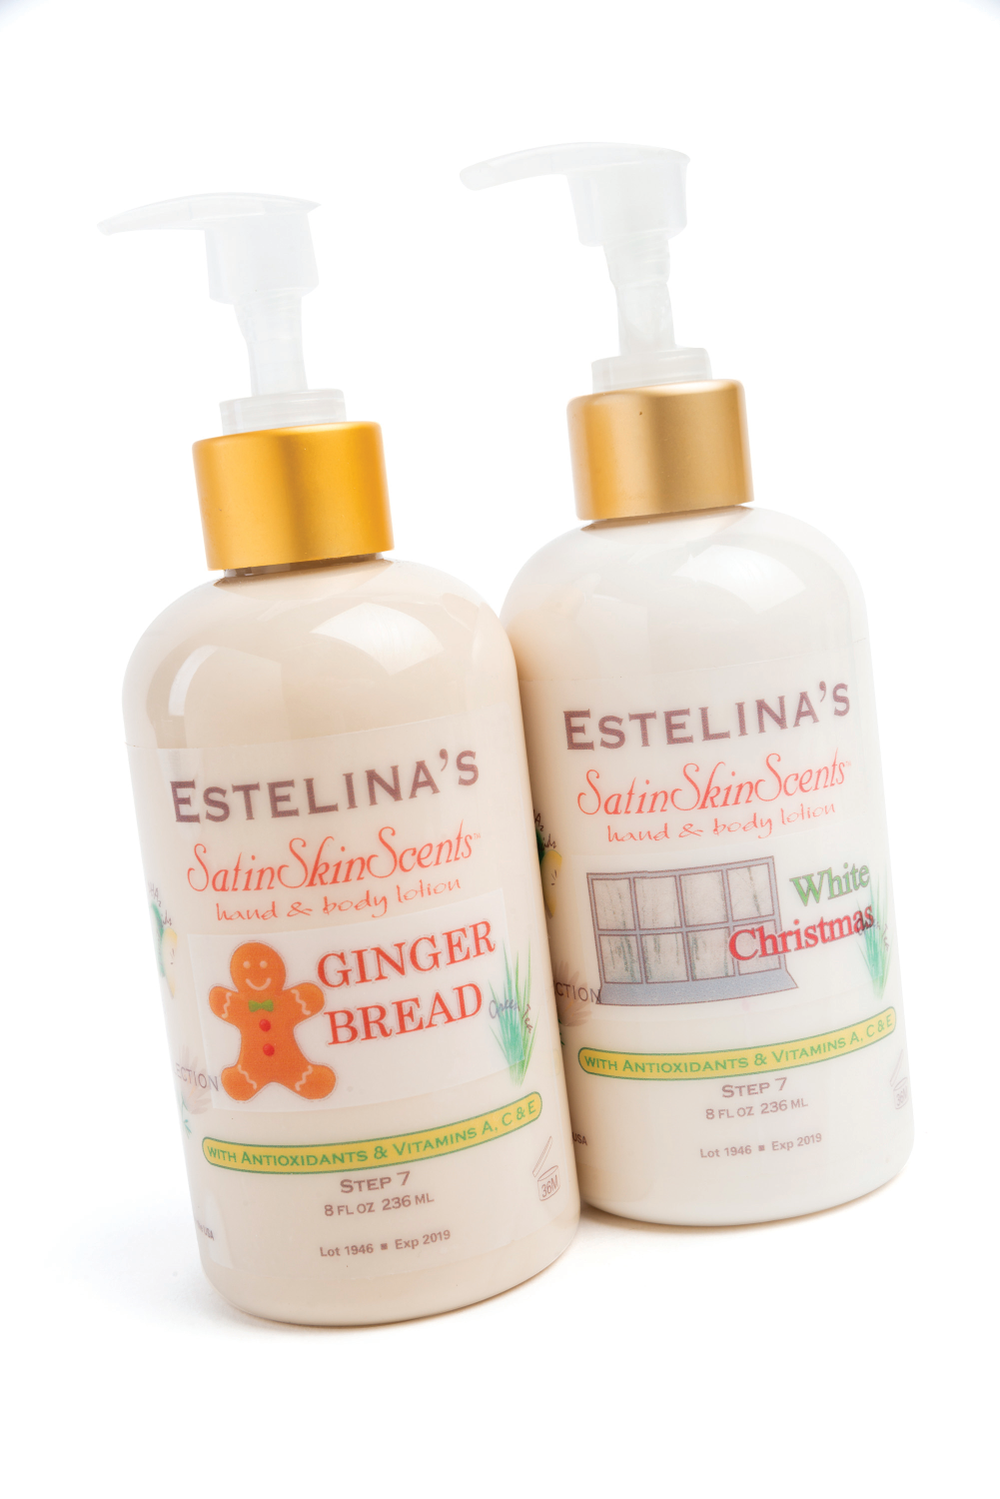 <p>Estelina&rsquo;s Satin SkinScents are non-greasy lotions that protect and moisturize skin. This season, the brand is offering two festive fragrances including Ginger Bread and White Christmas.&nbsp;</p>